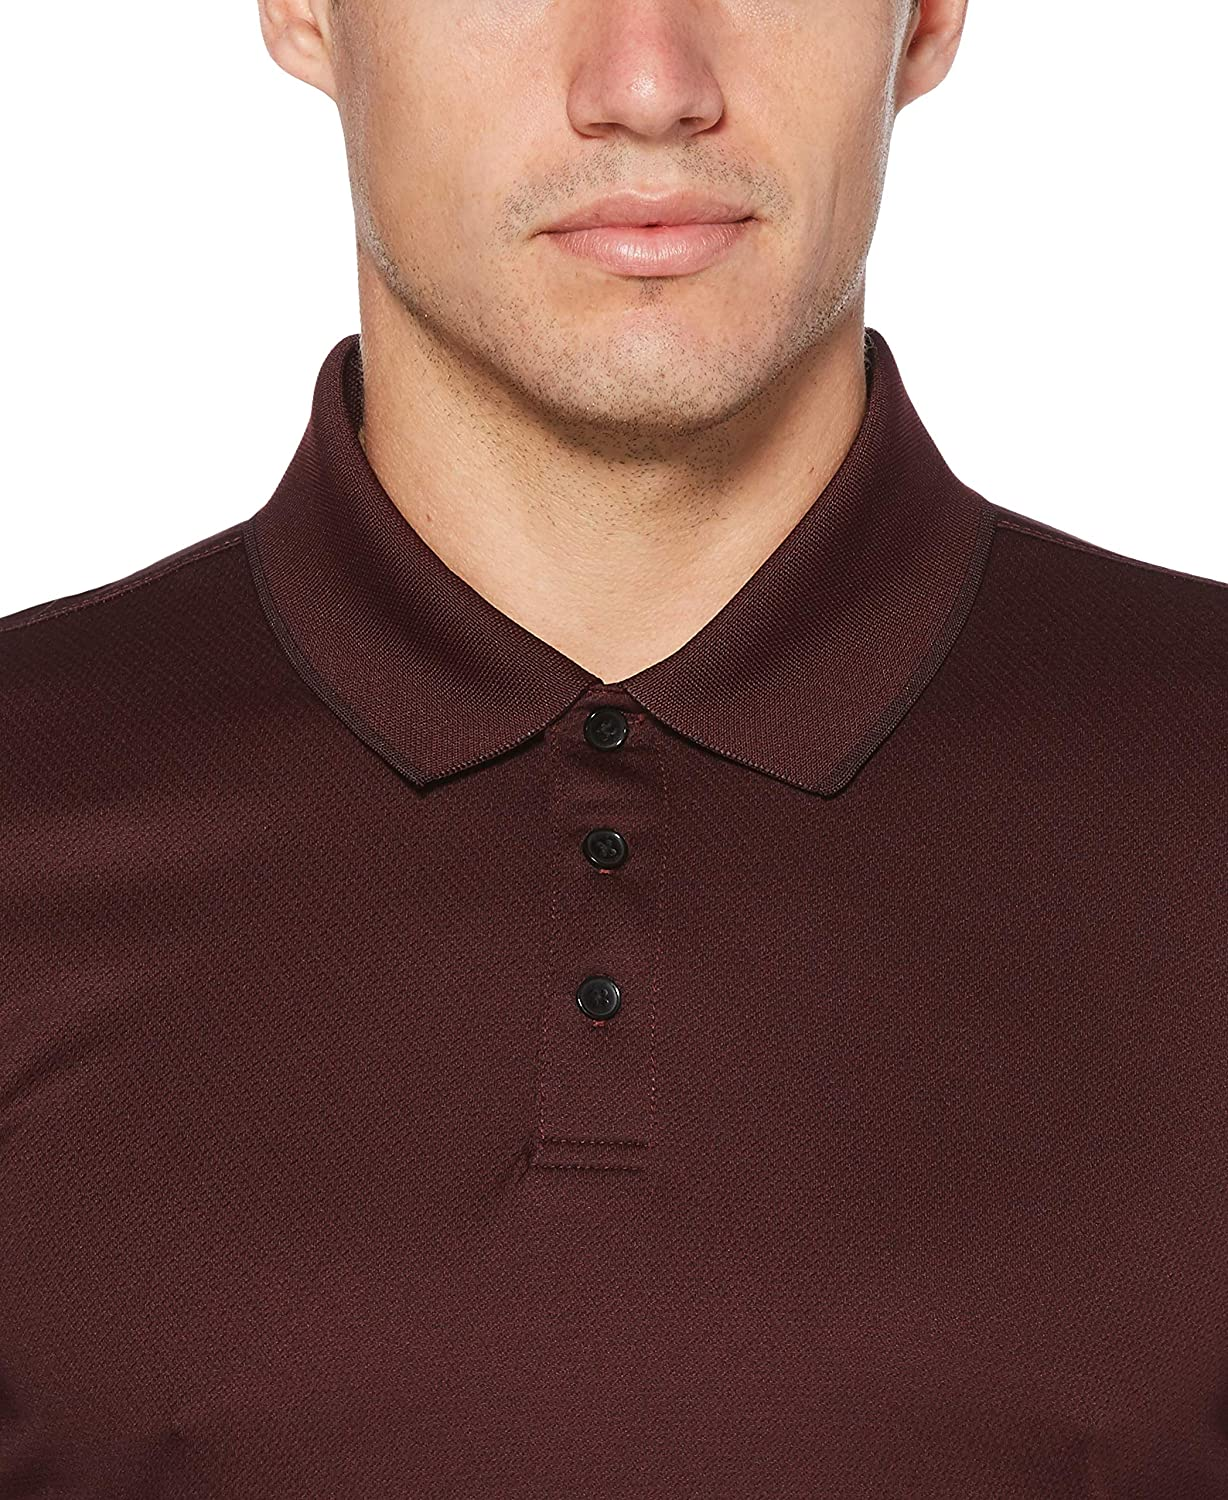 c607be65 Perry Ellis Men's 3 Button Long Sleeve Jacquard Polo at Amazon Men's  Clothing store: